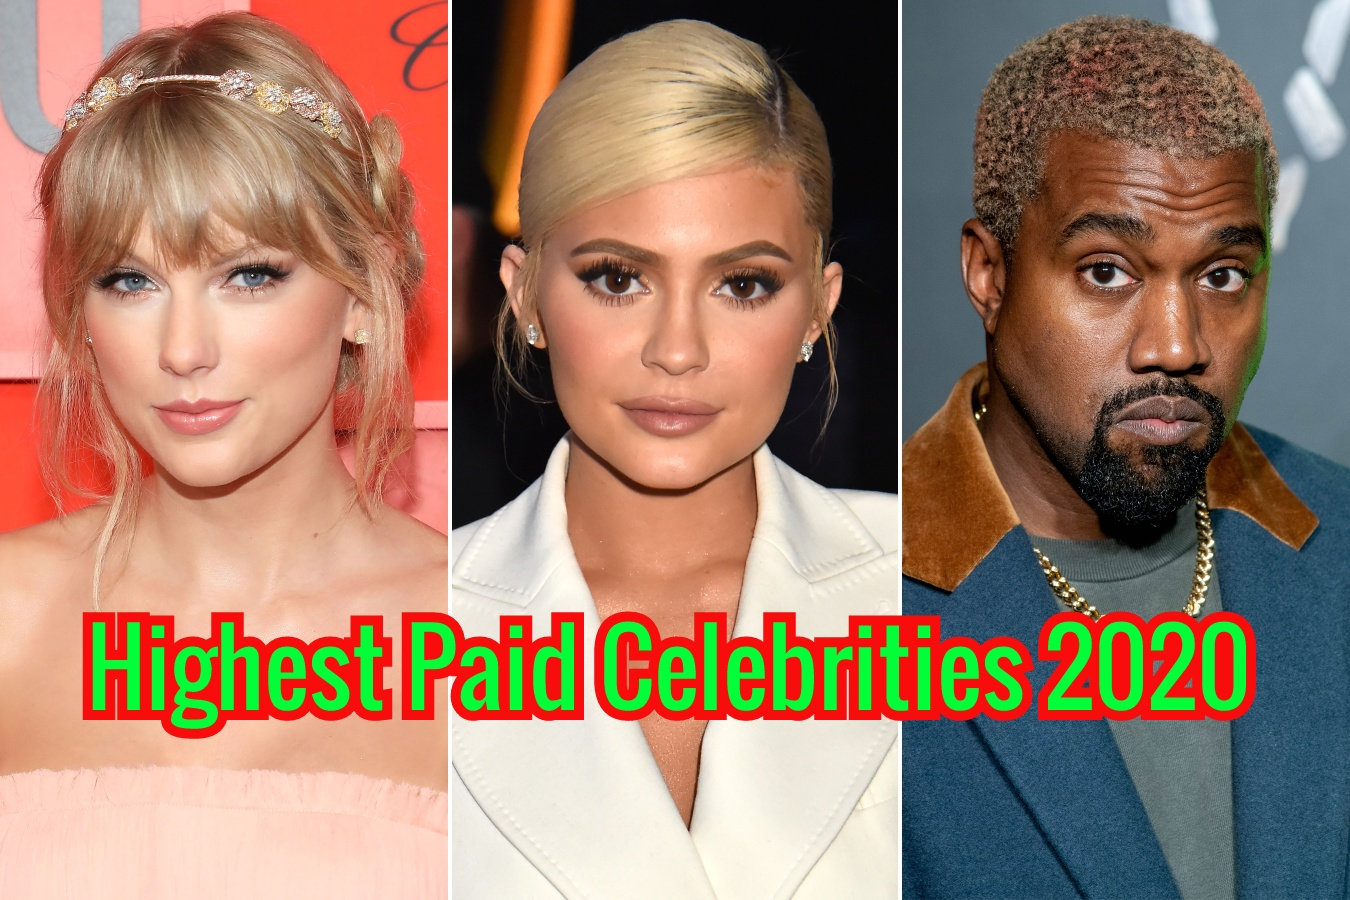 Highest Paid Celebrities in the World 2020